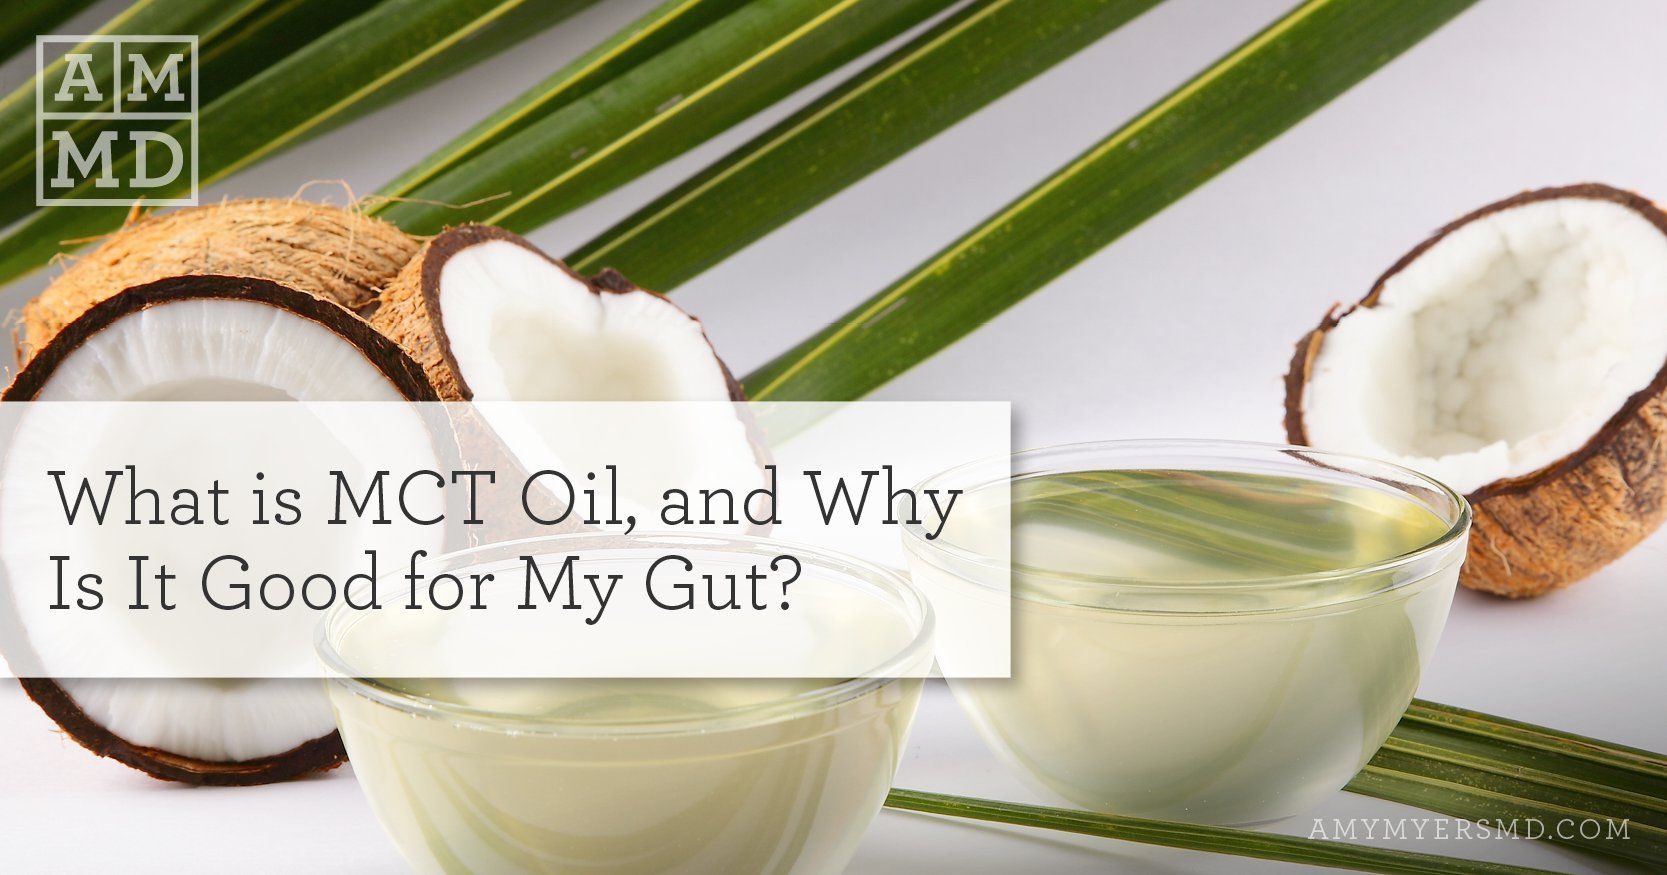 Mct oil why is it good for my gut amy myers md gut